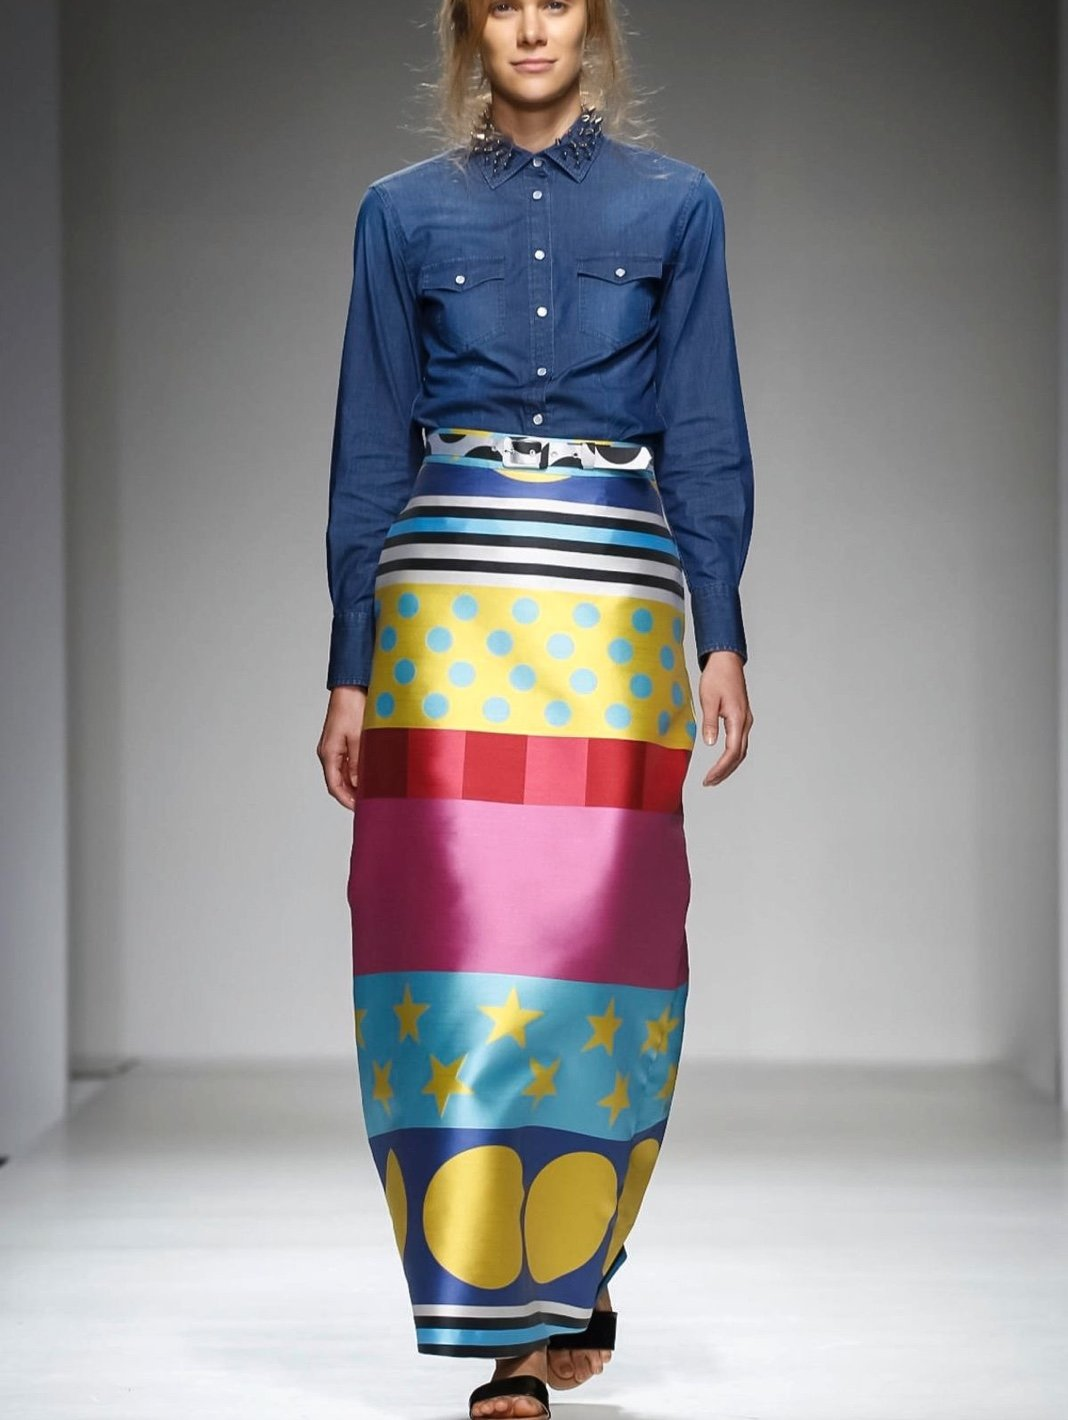 Maxi Skirt Pop Art - The Bobby Boga